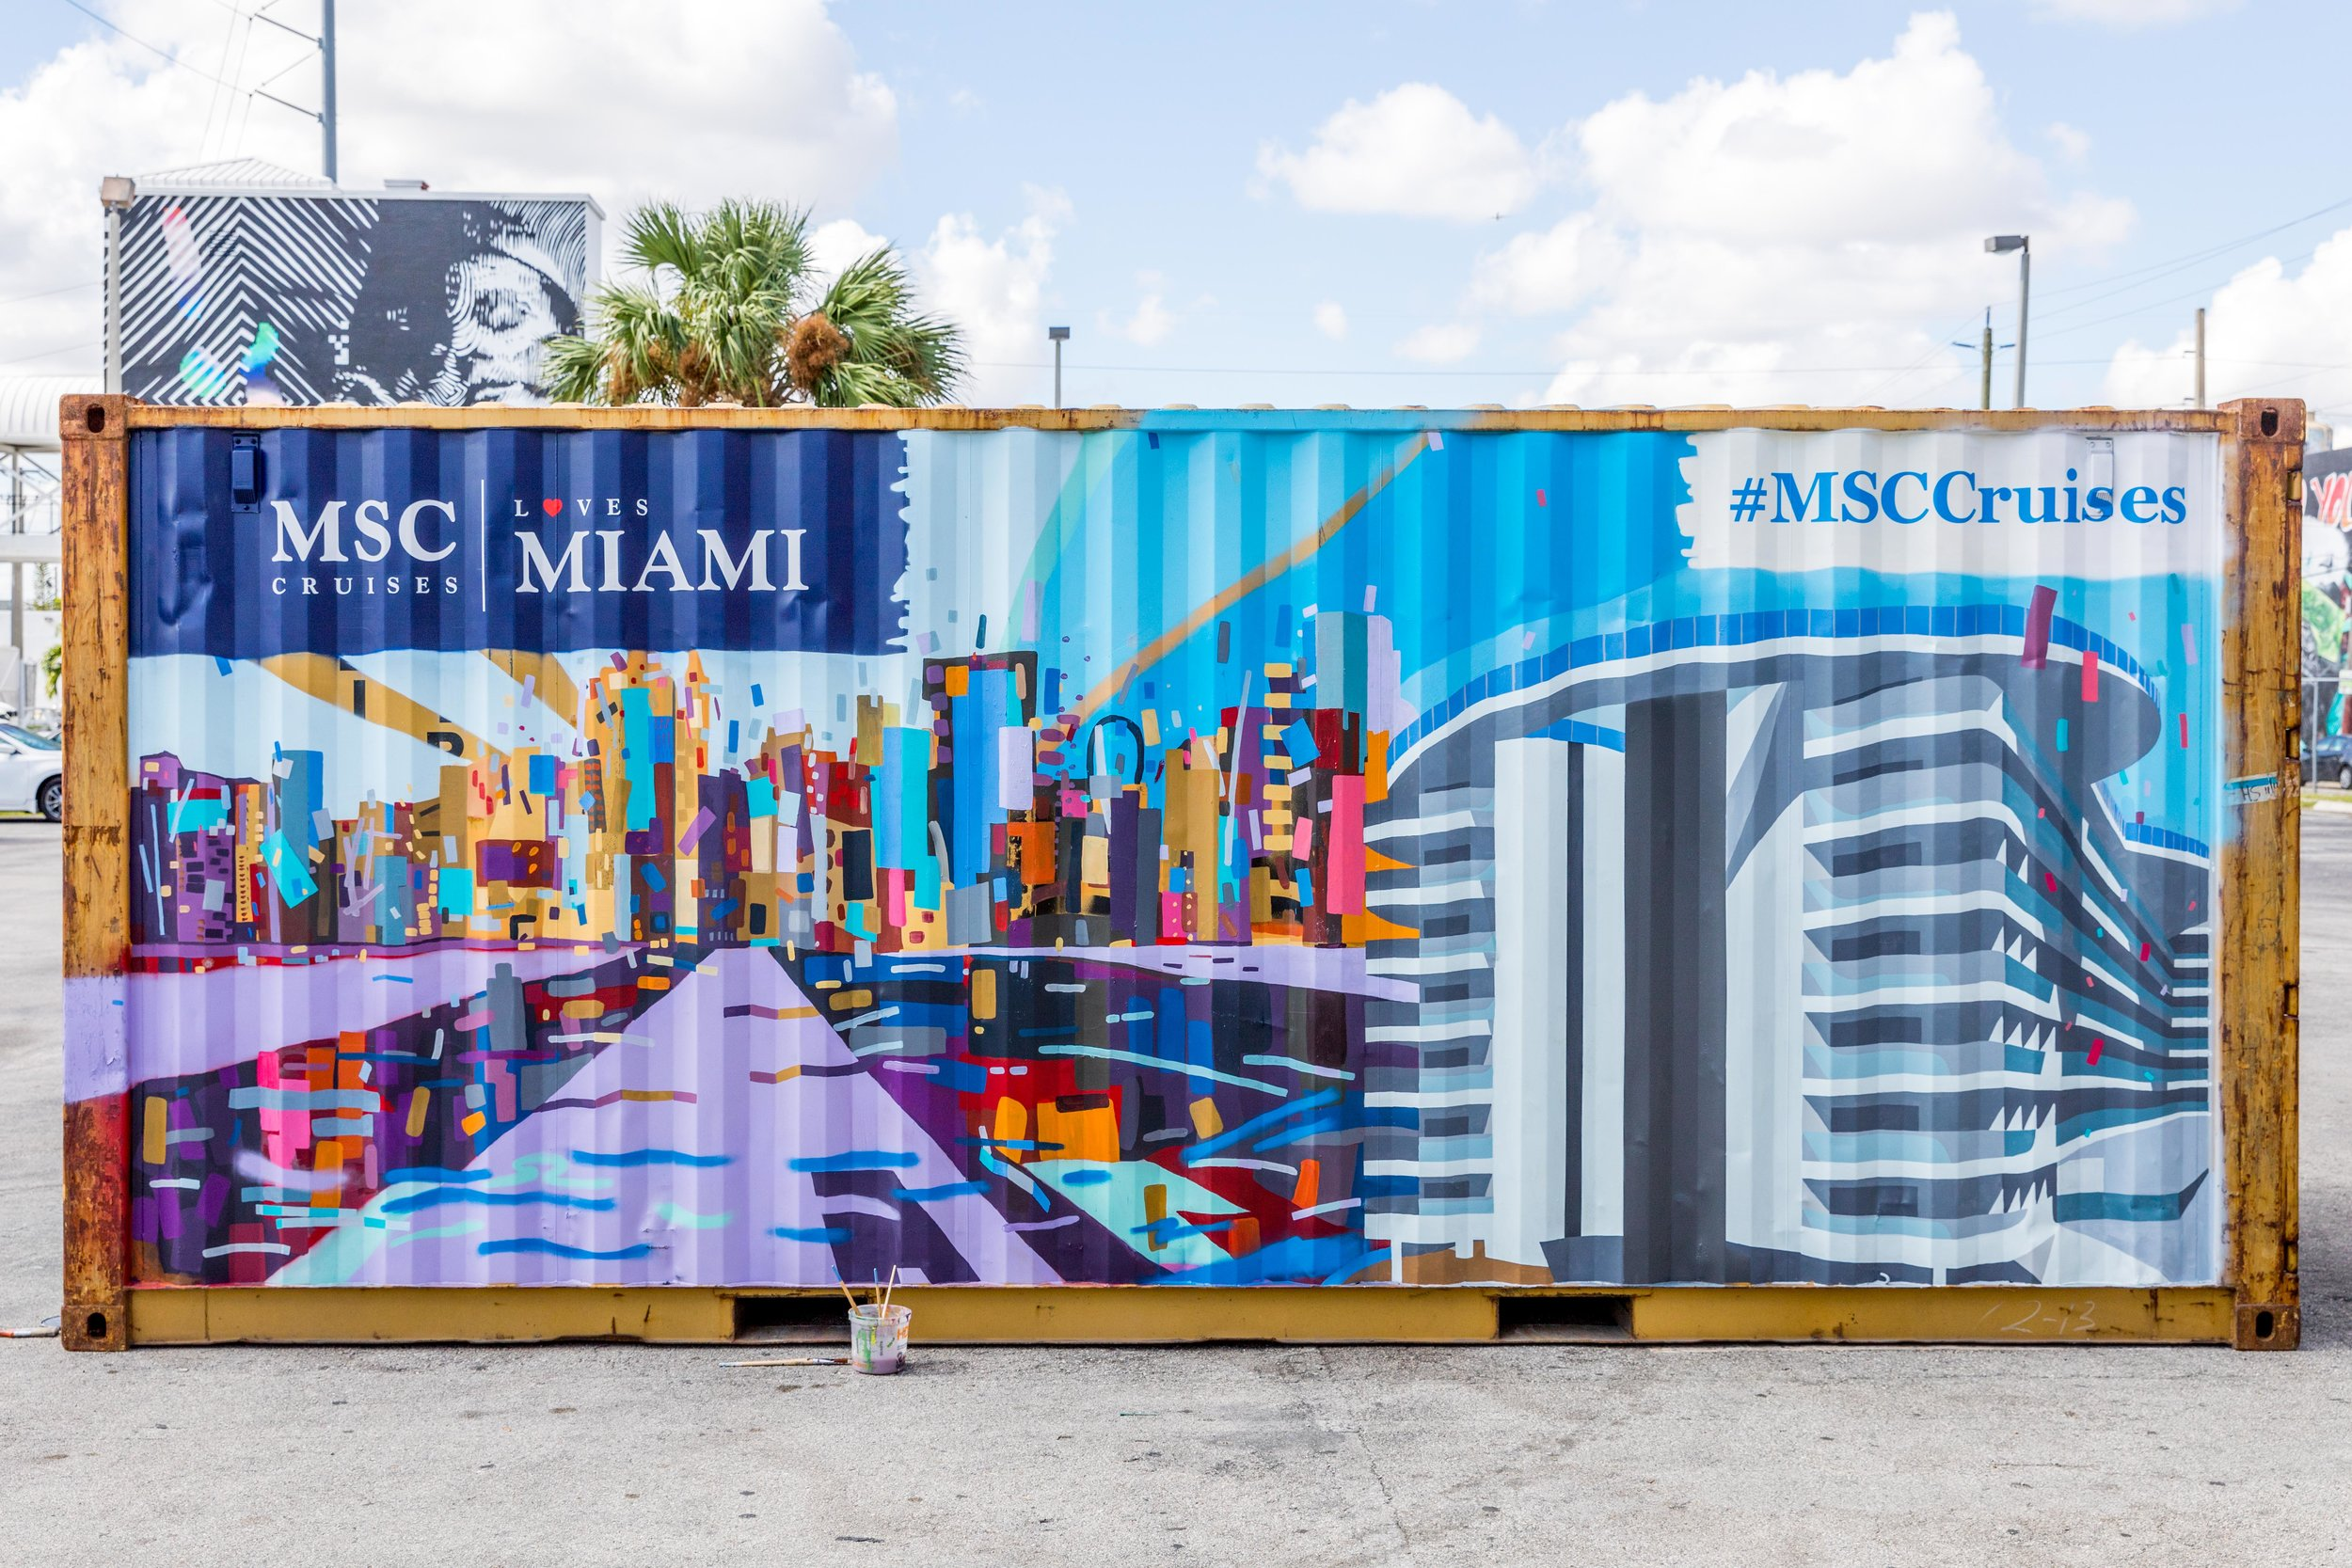 MSC Cruises Container, Side View